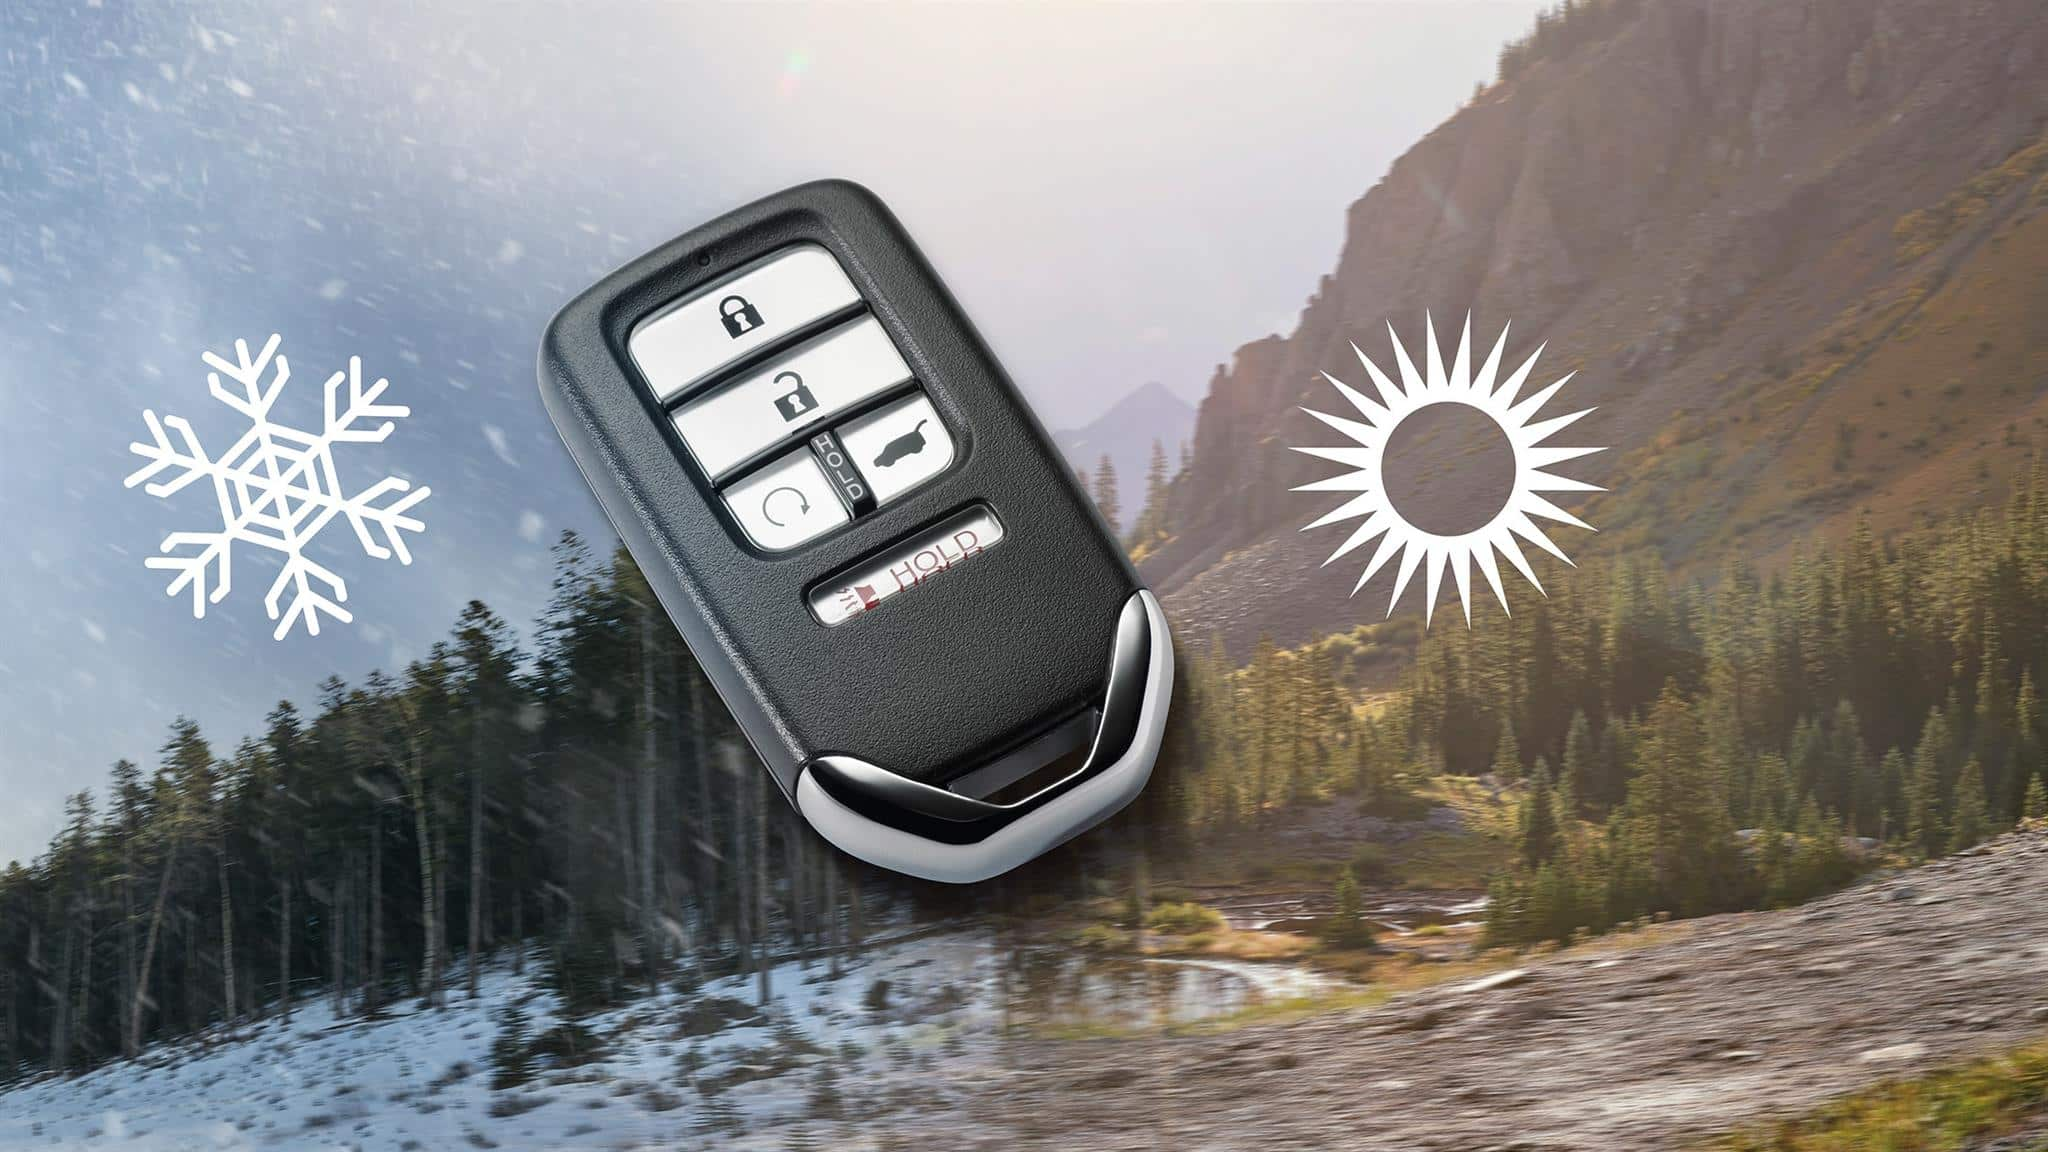 Remote engine start key fob for the 2019 Honda Passport.